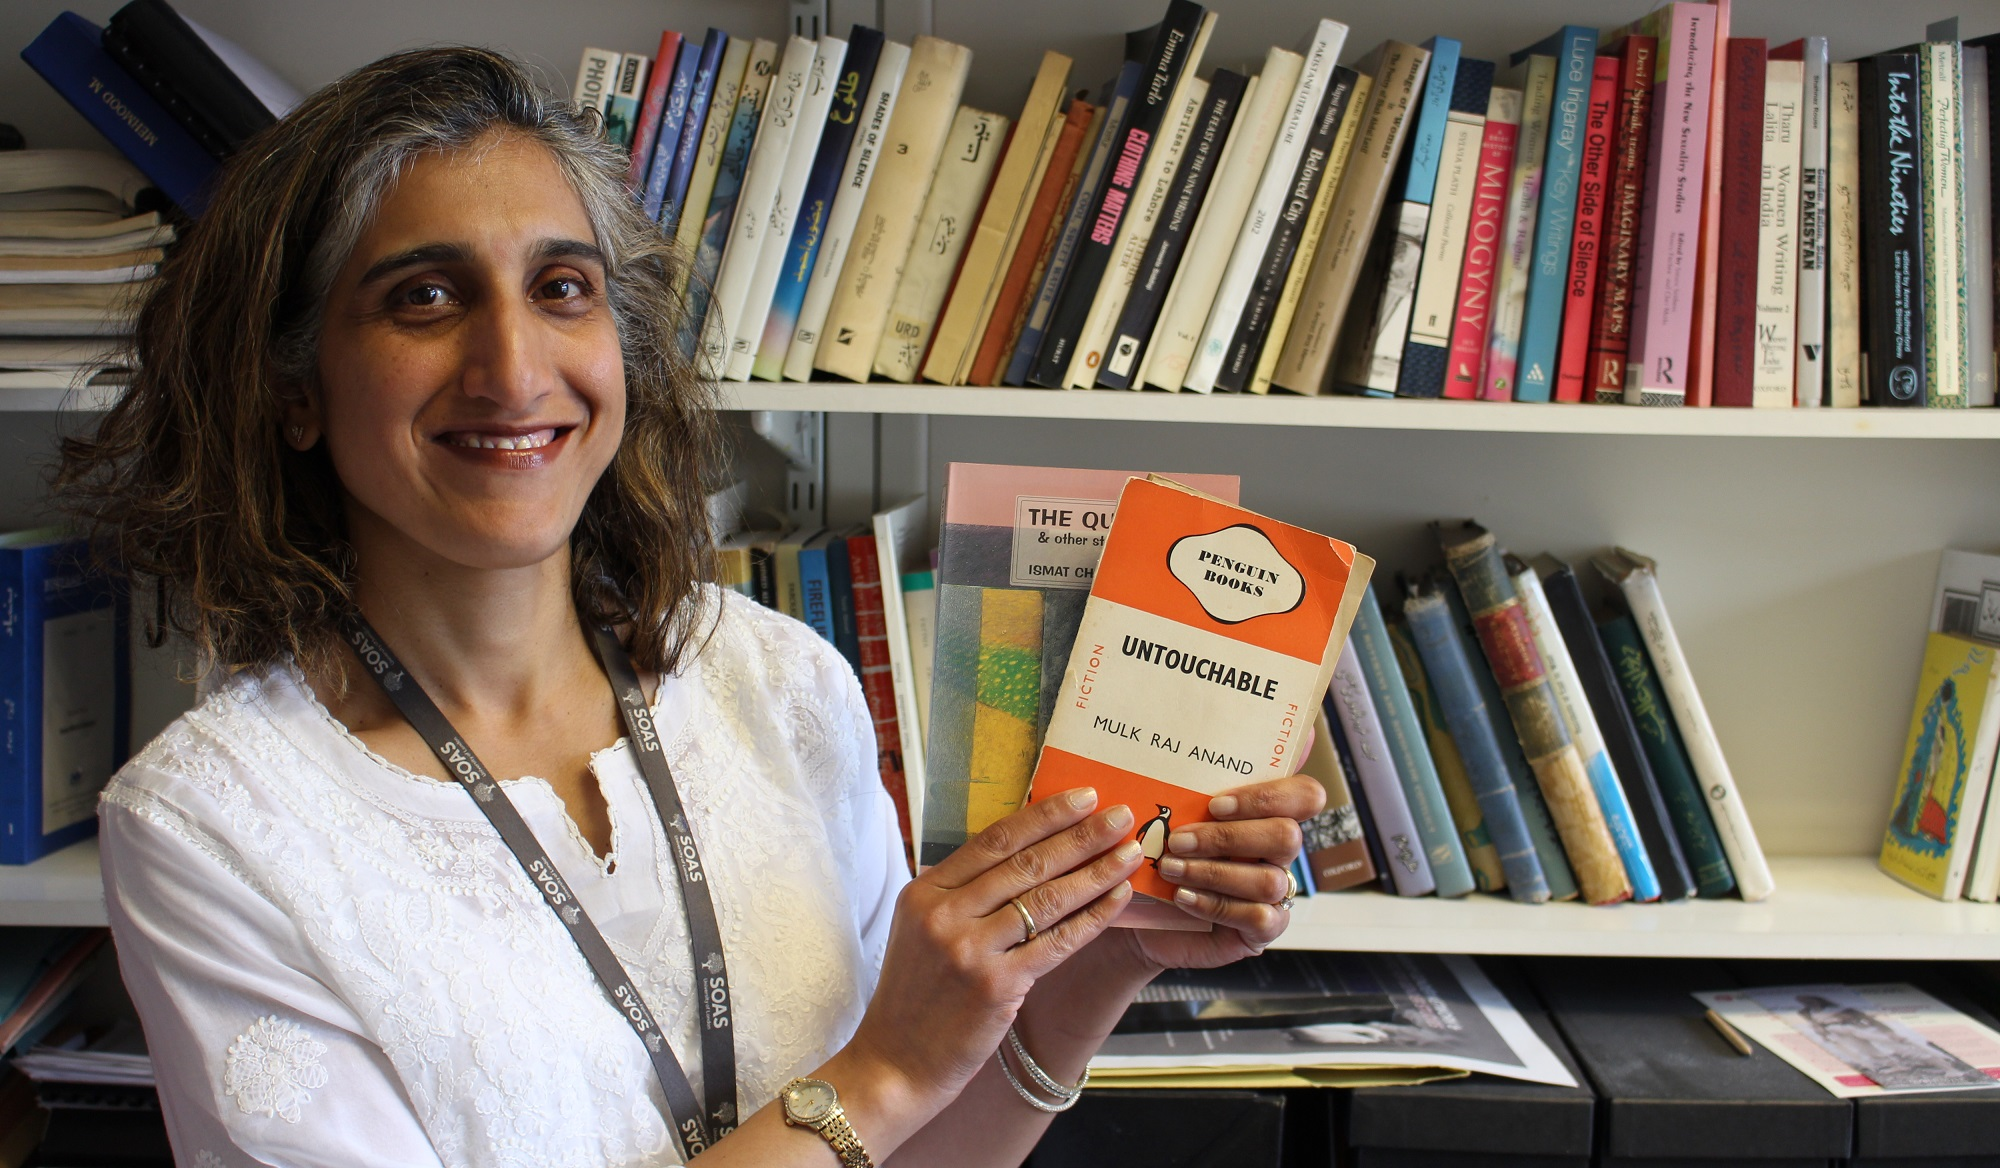 Dr Amina Yaqin, Senior Lecturer in Urdu and Postcolonial Studies, selected Untouchable by Mulk Raj Anand and Lihaaf by Ismat Chughtai amongst others.